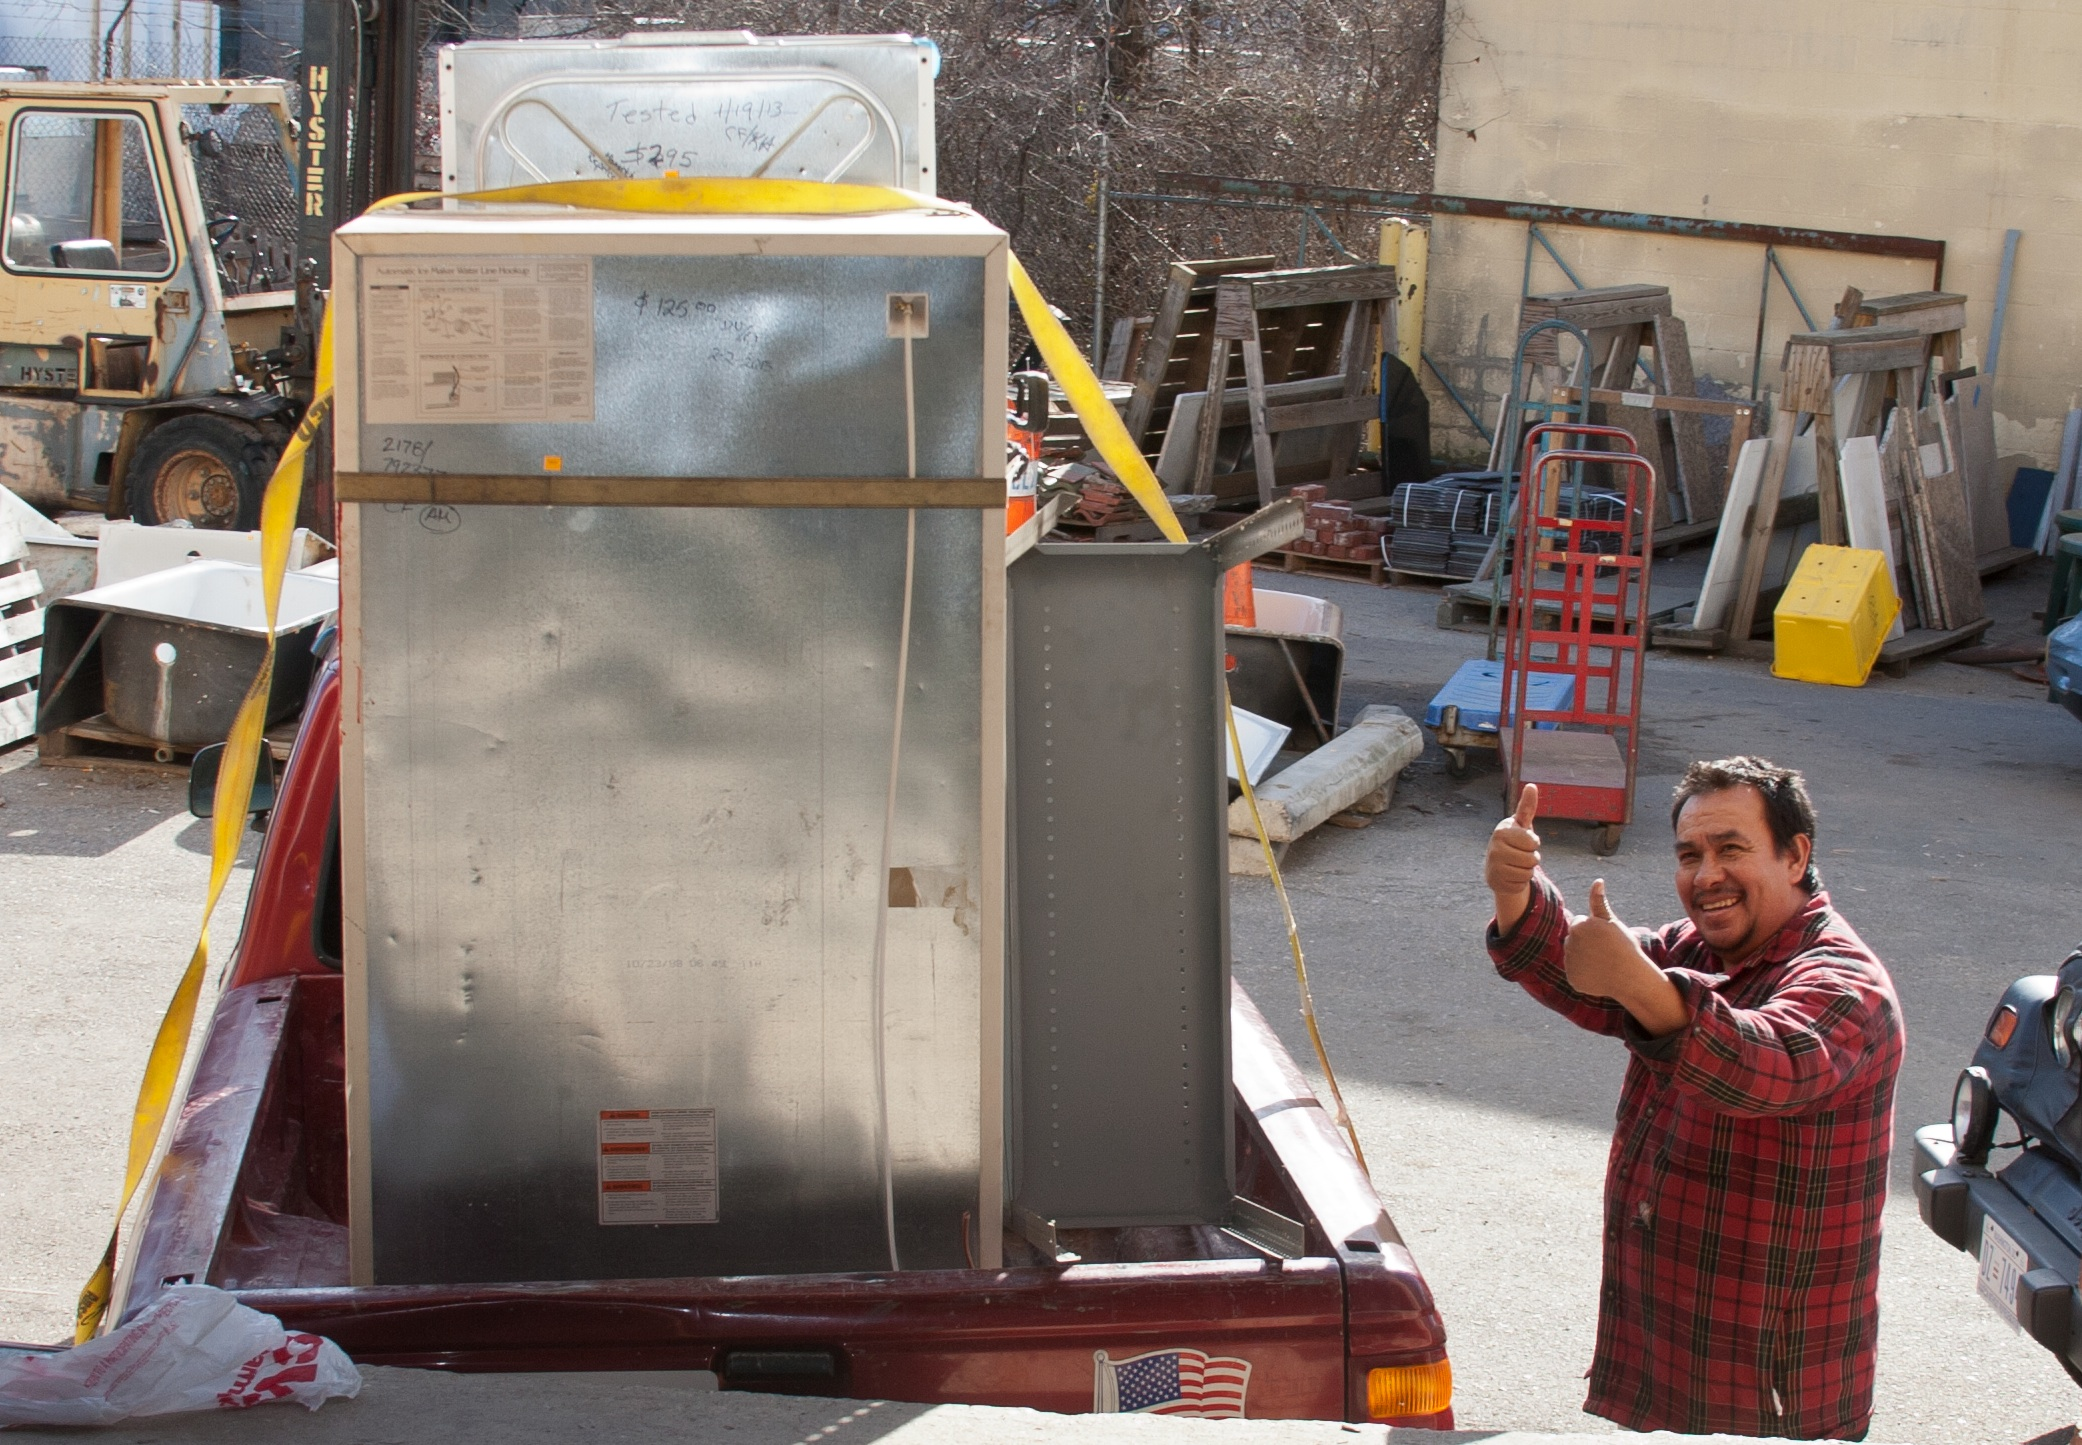 This Forklift Fan was excited to find some great deals! (Photo by Edward Jackson)